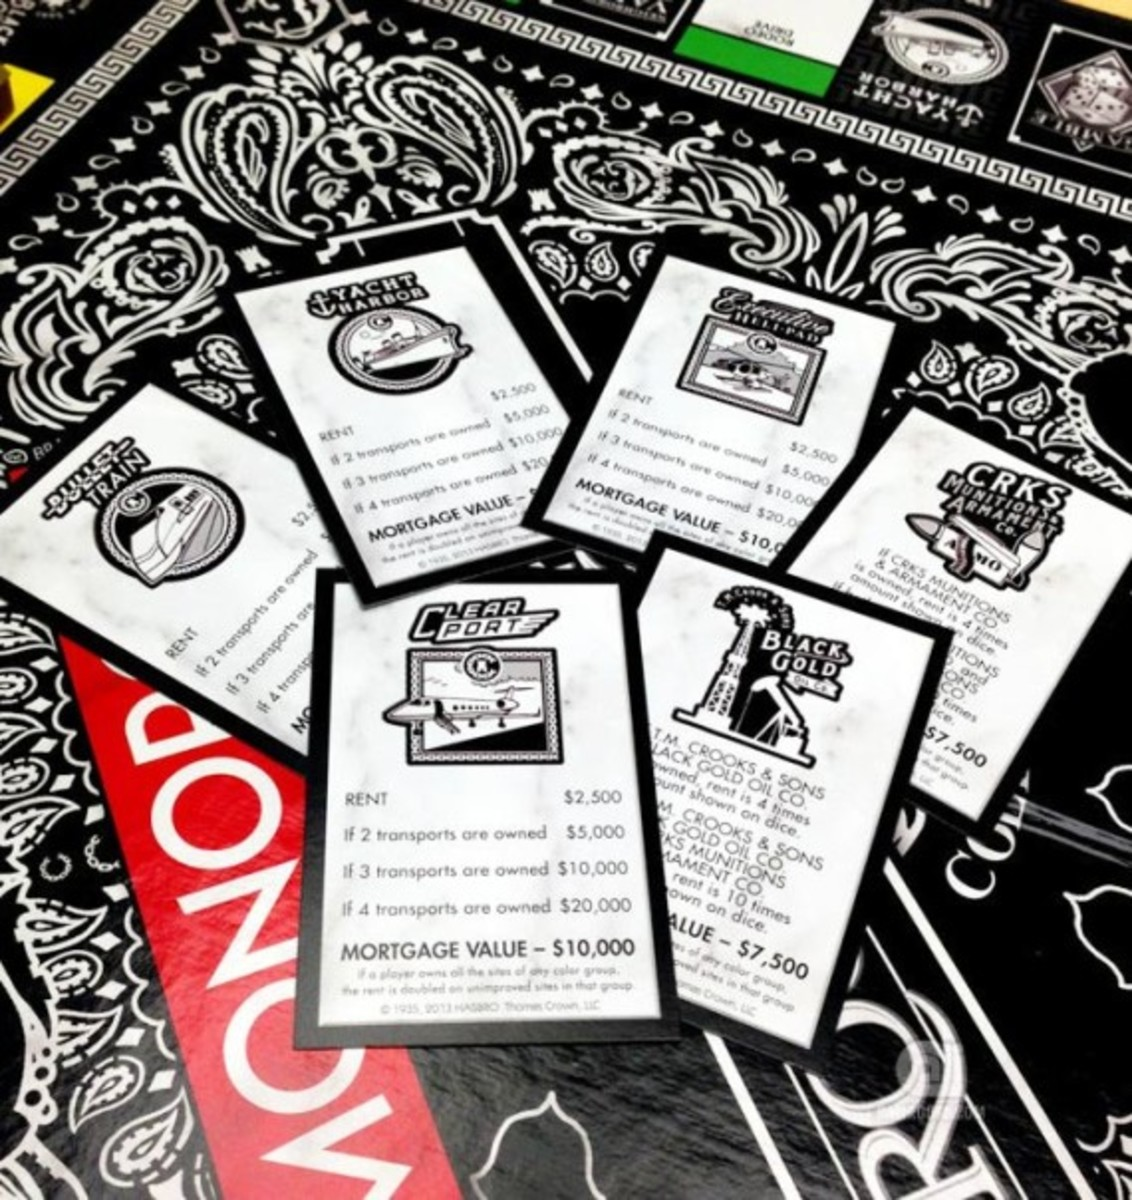 hasbro-crooks-and-castles-monopoly-03